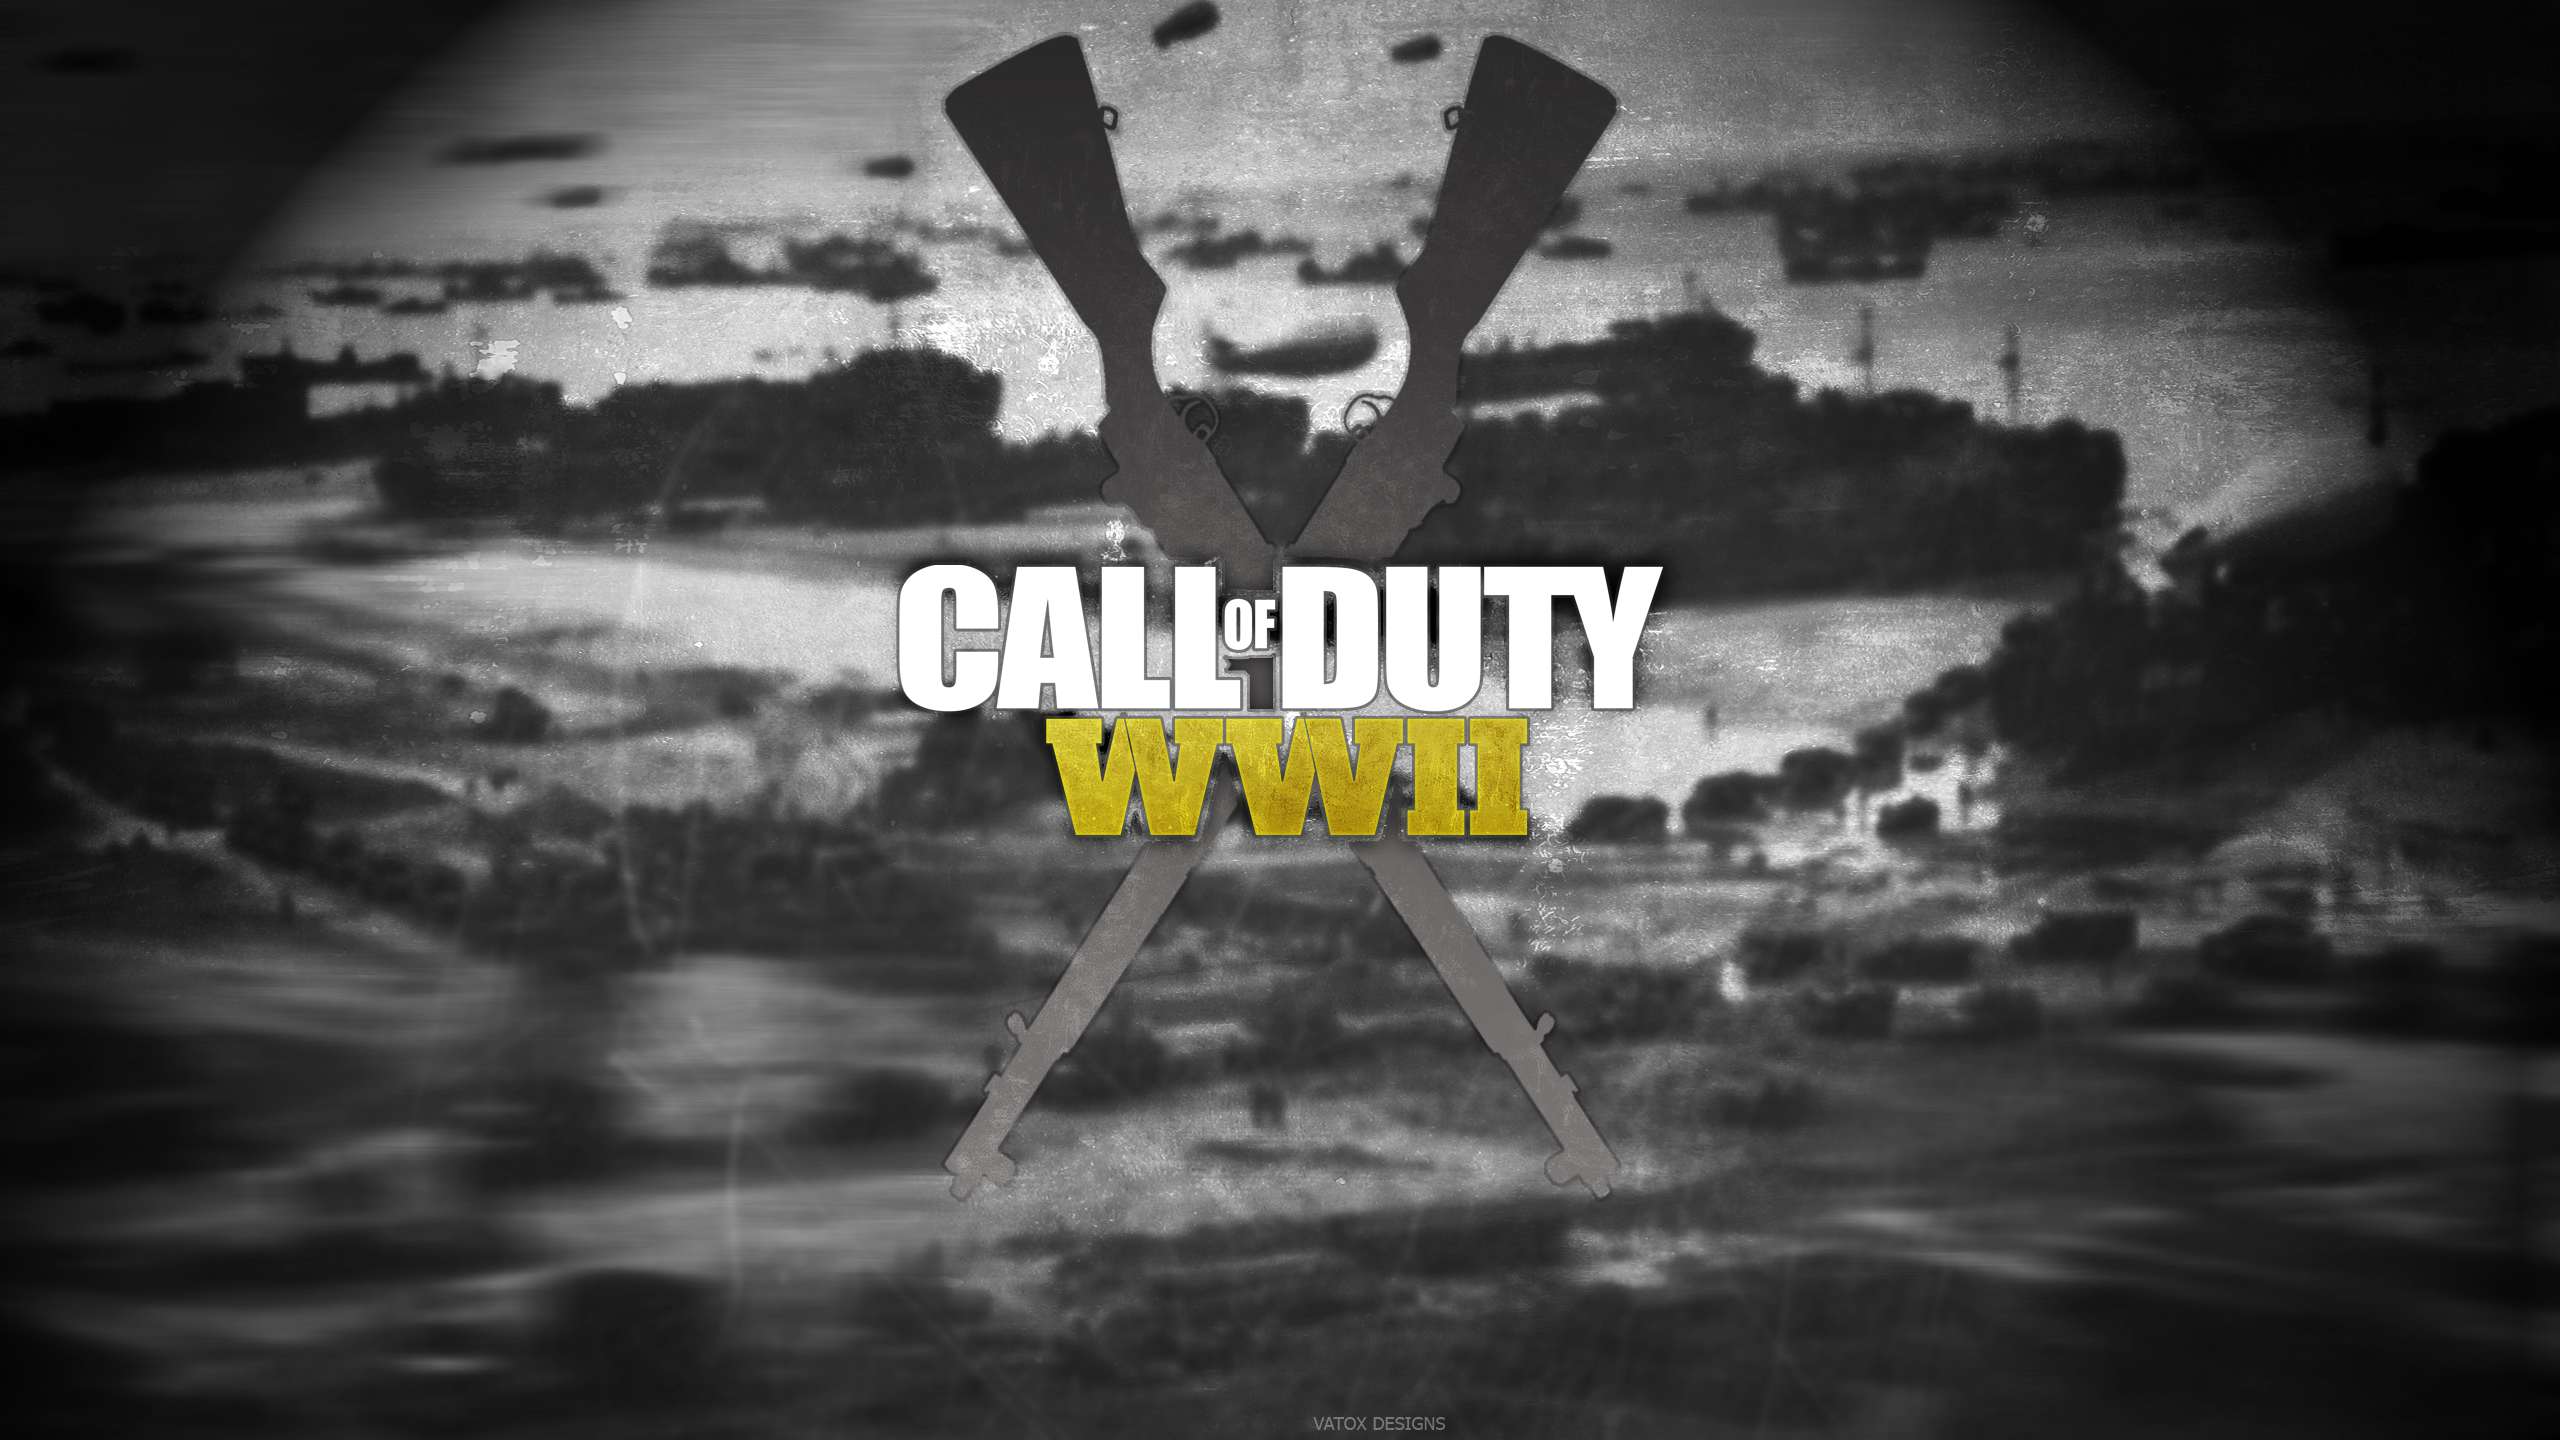 Call Of Duty Wwii Hd Wallpaper Background Image 2560x1440